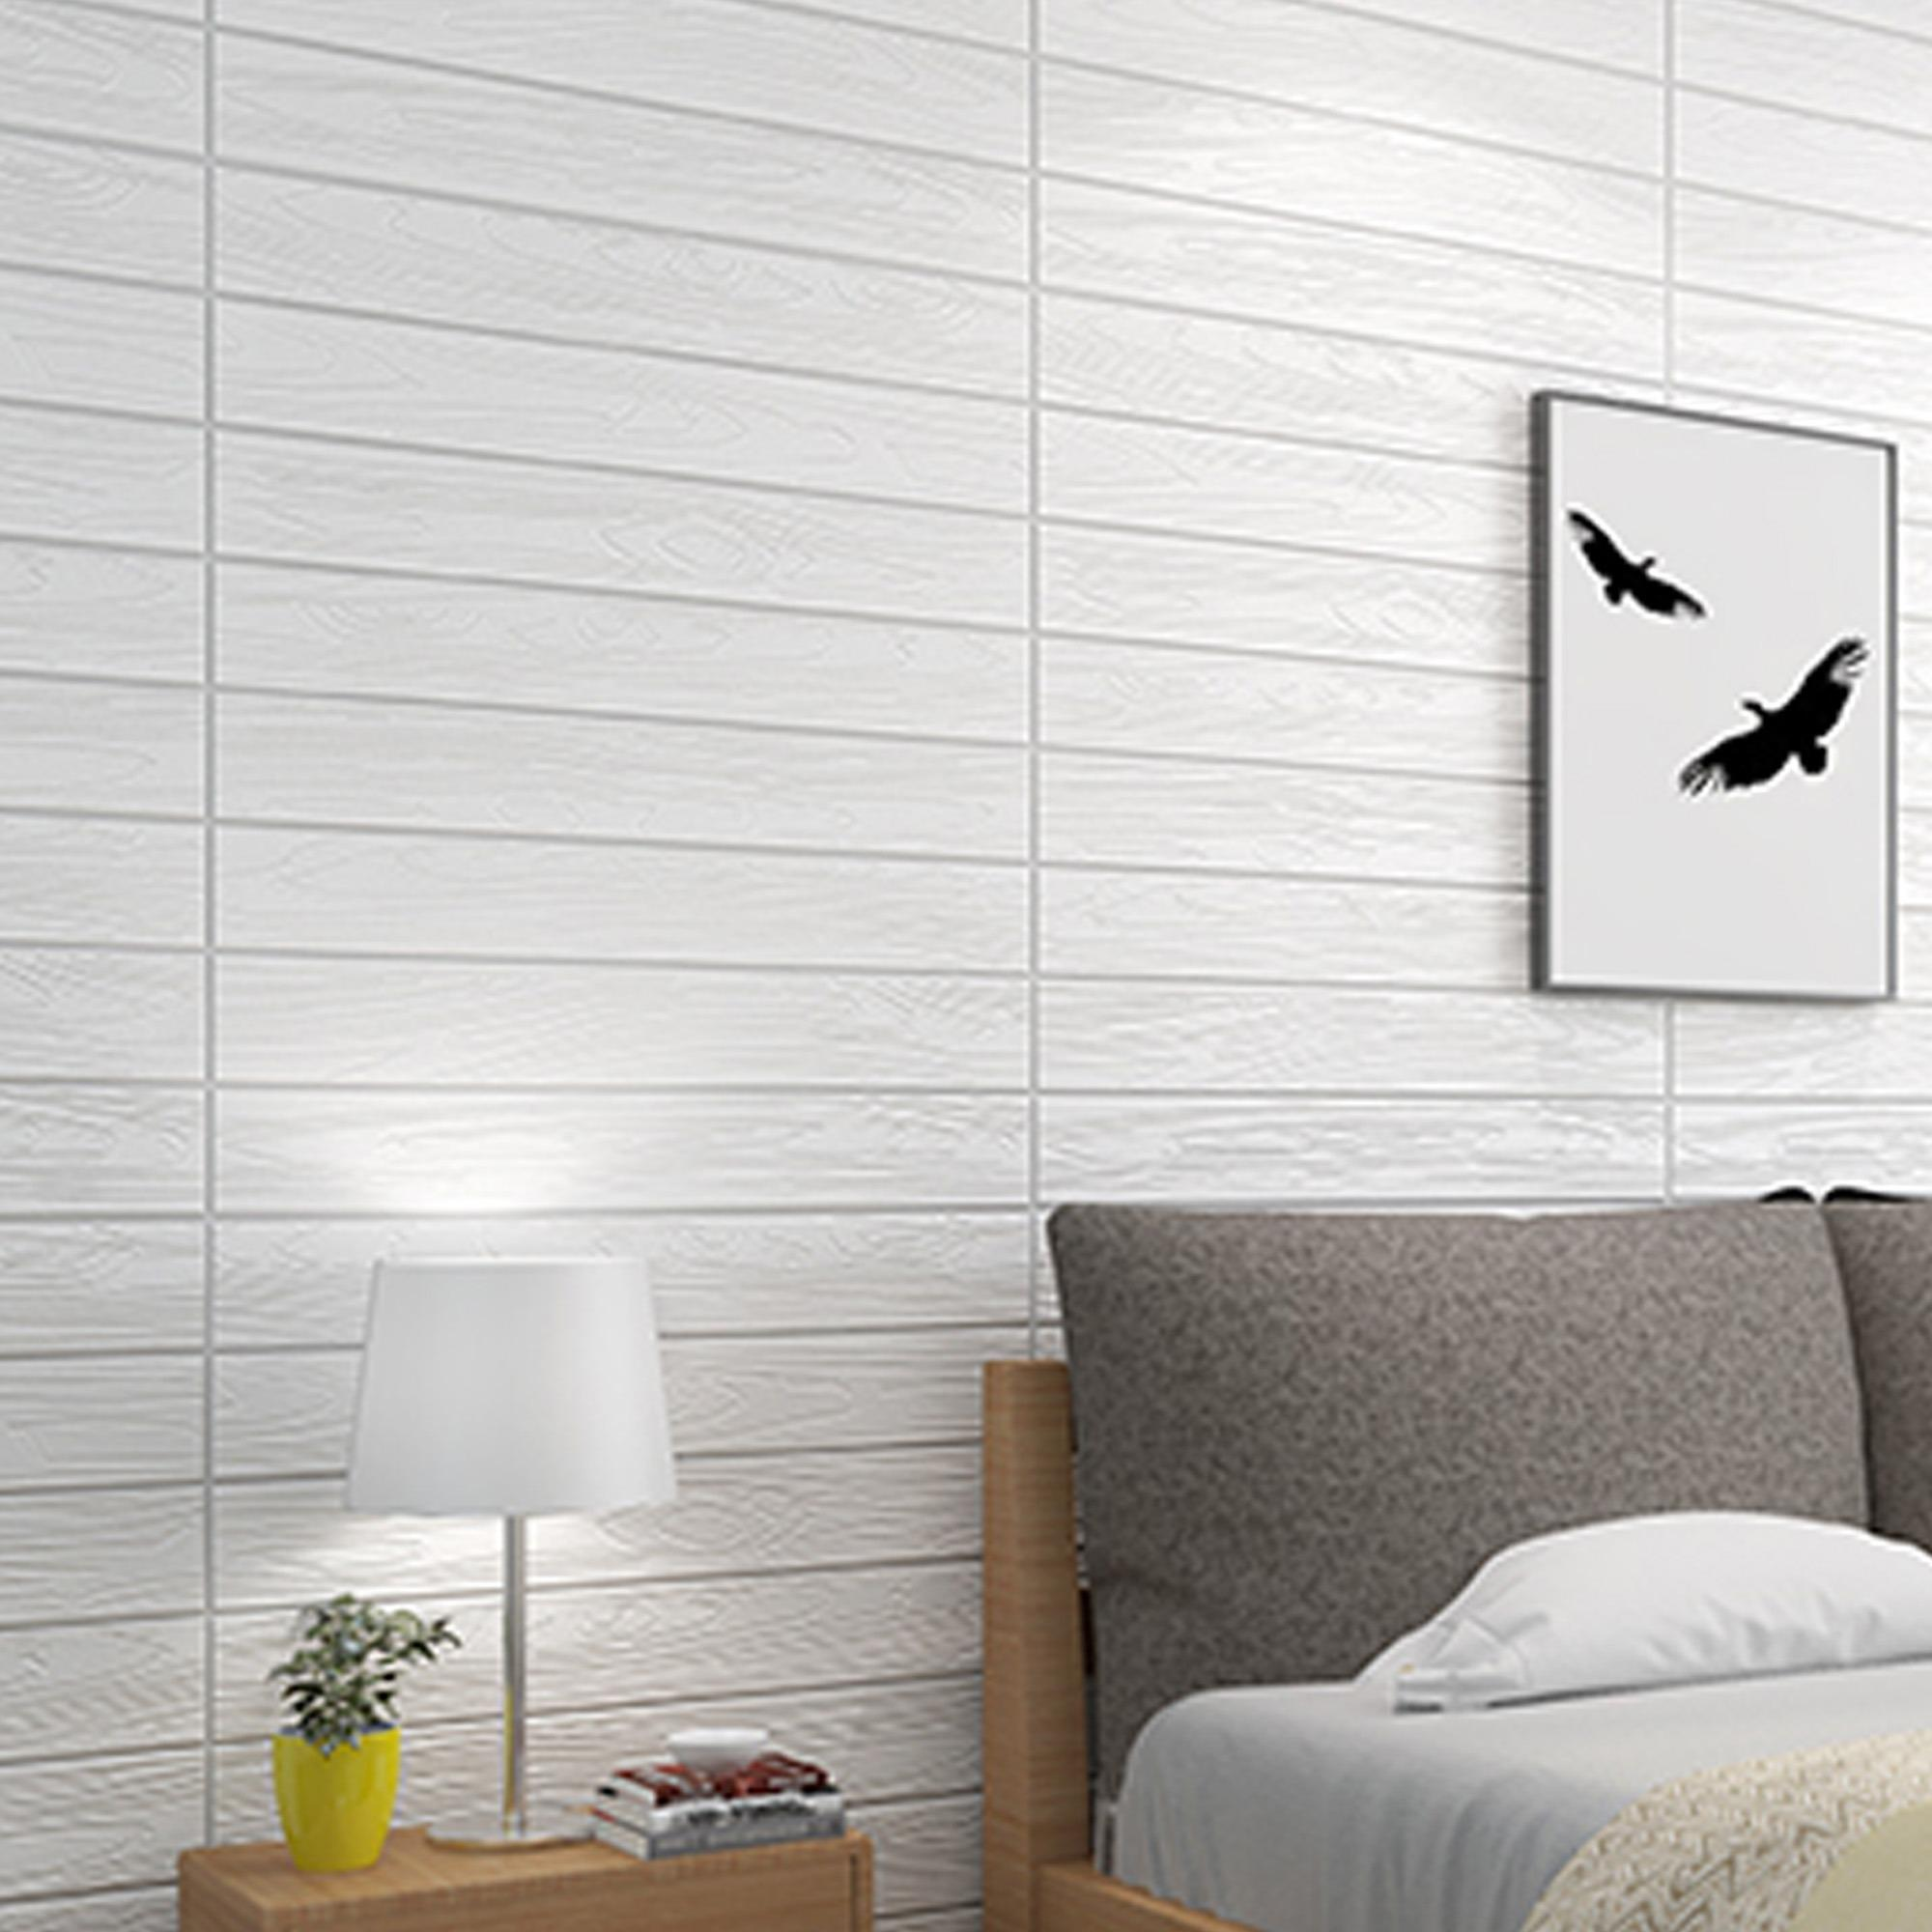 Wallsticker Wood 3D DIY Wall (70cm x 75cm) PE Foam 1 PIECE ( 2 DESIGN AVAILABLE )